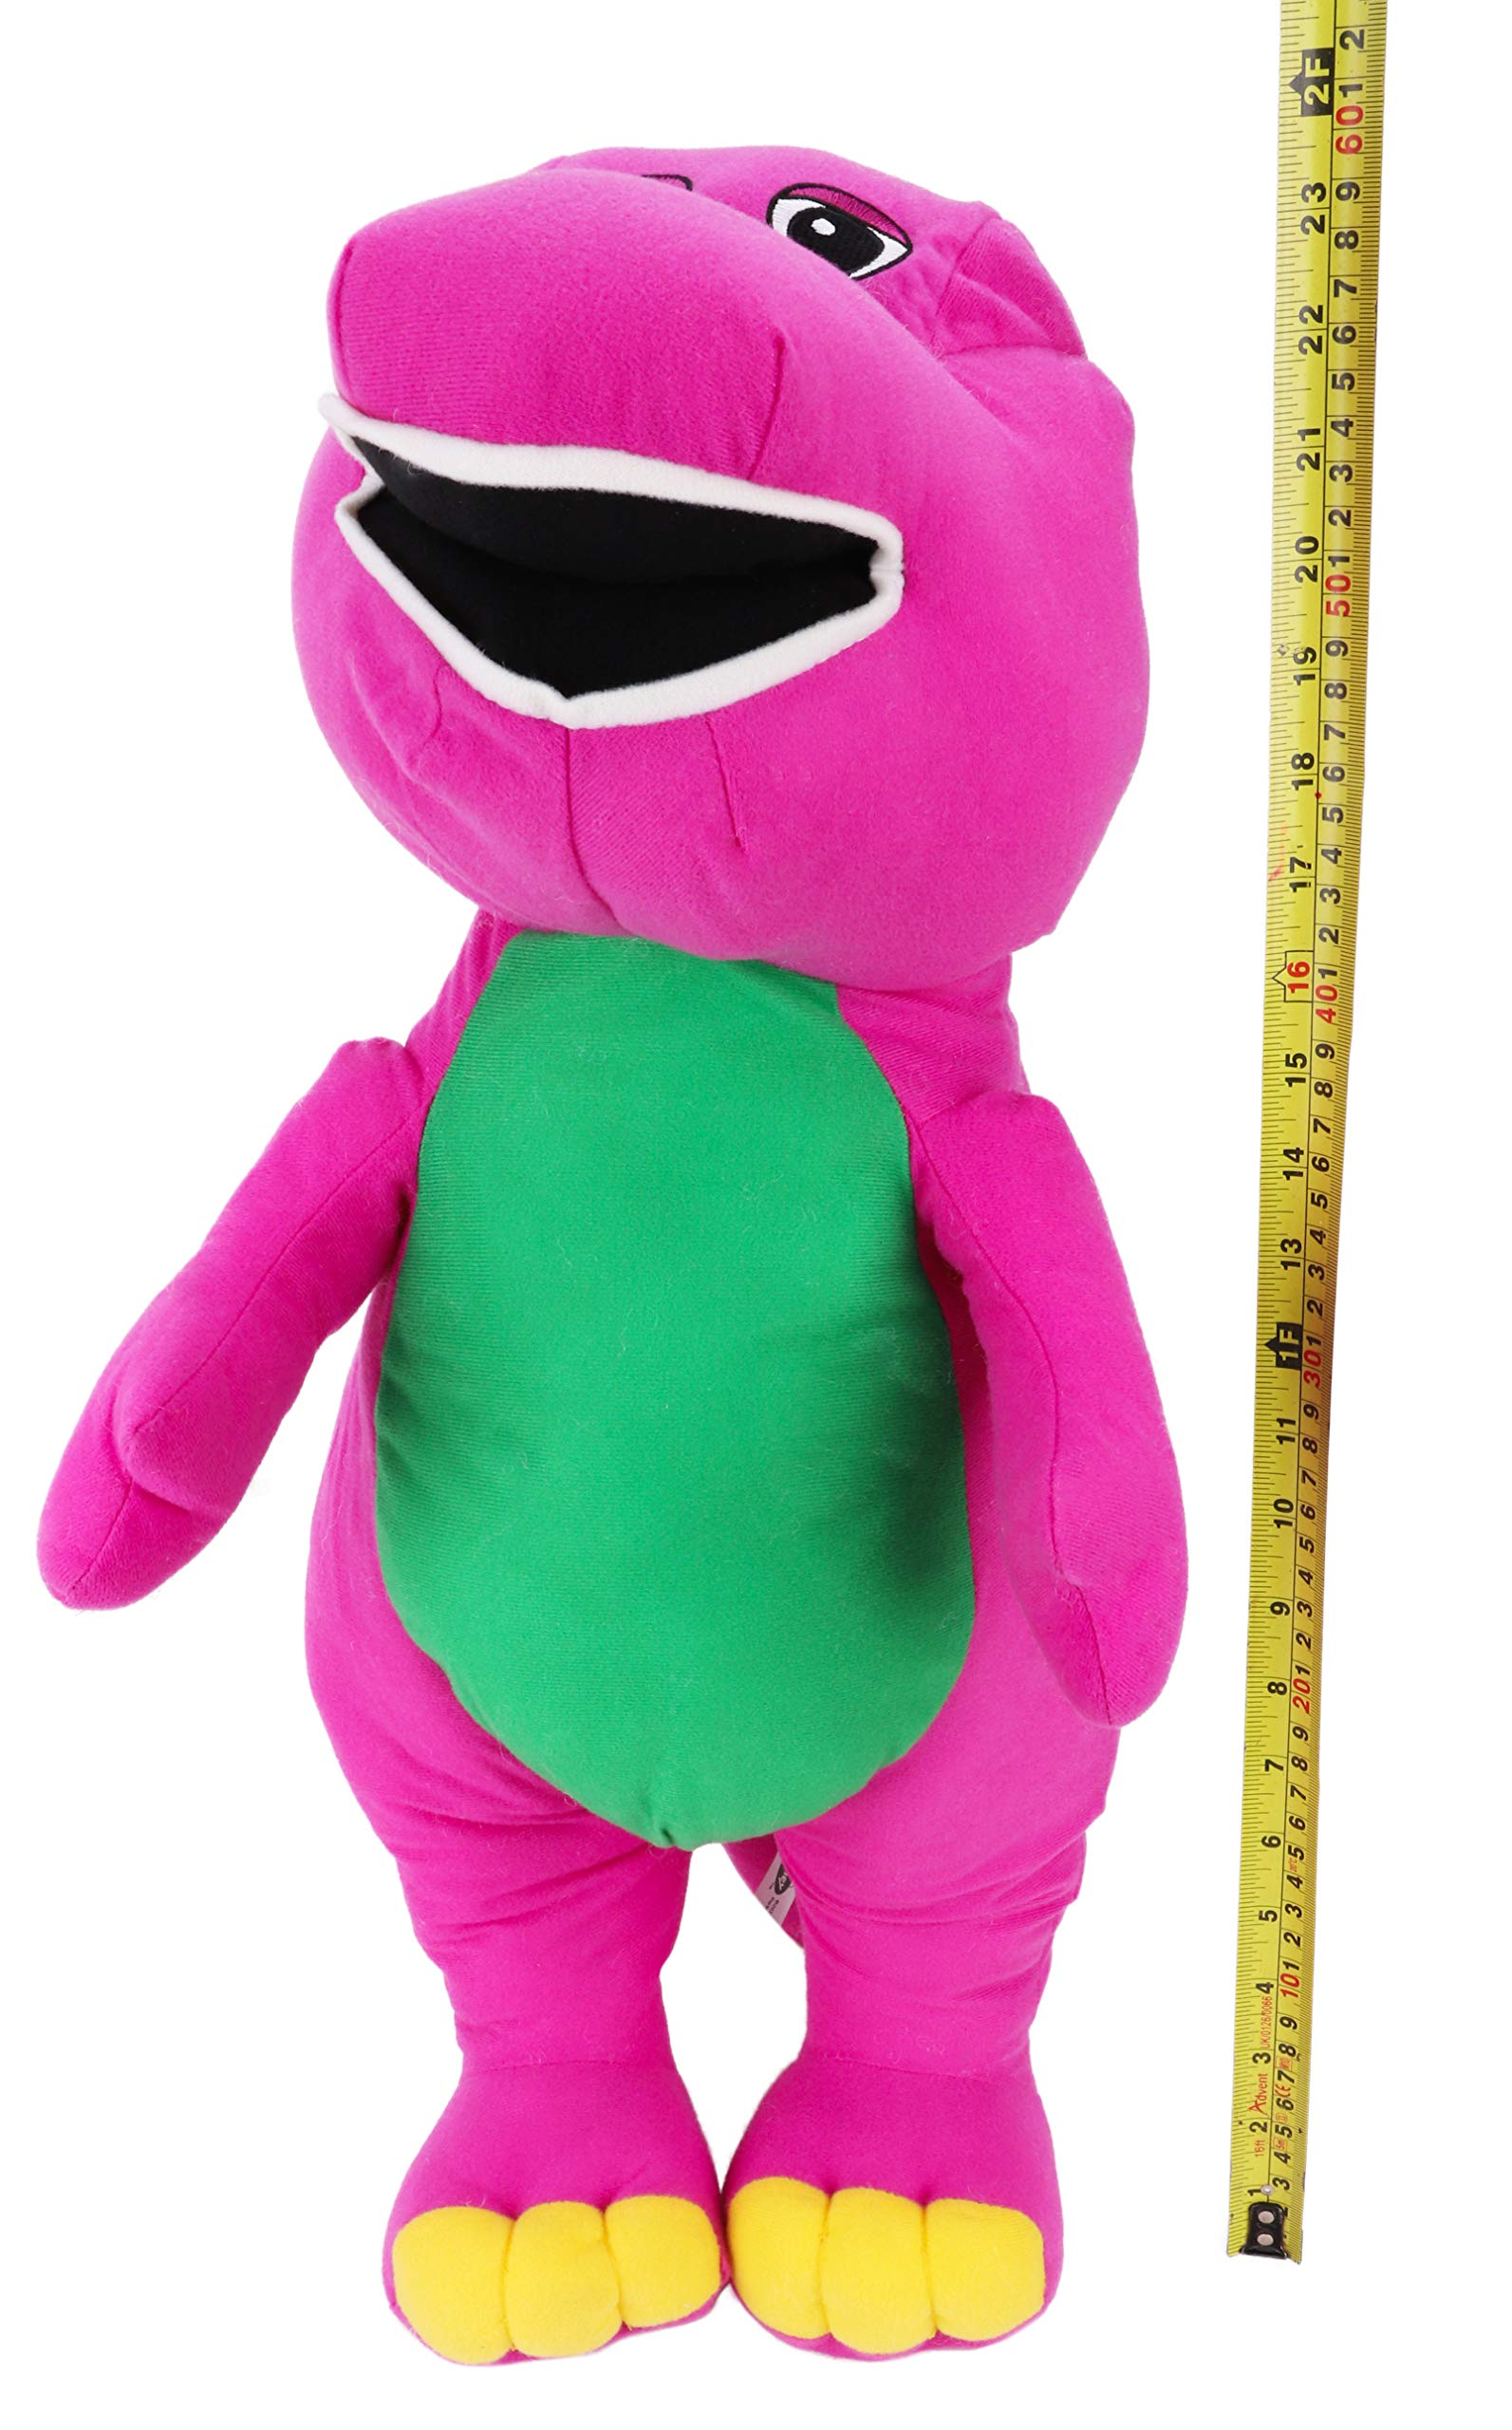 "Barney Barney & Friends - 24"" The Dinosaur Soft Plush Toy"